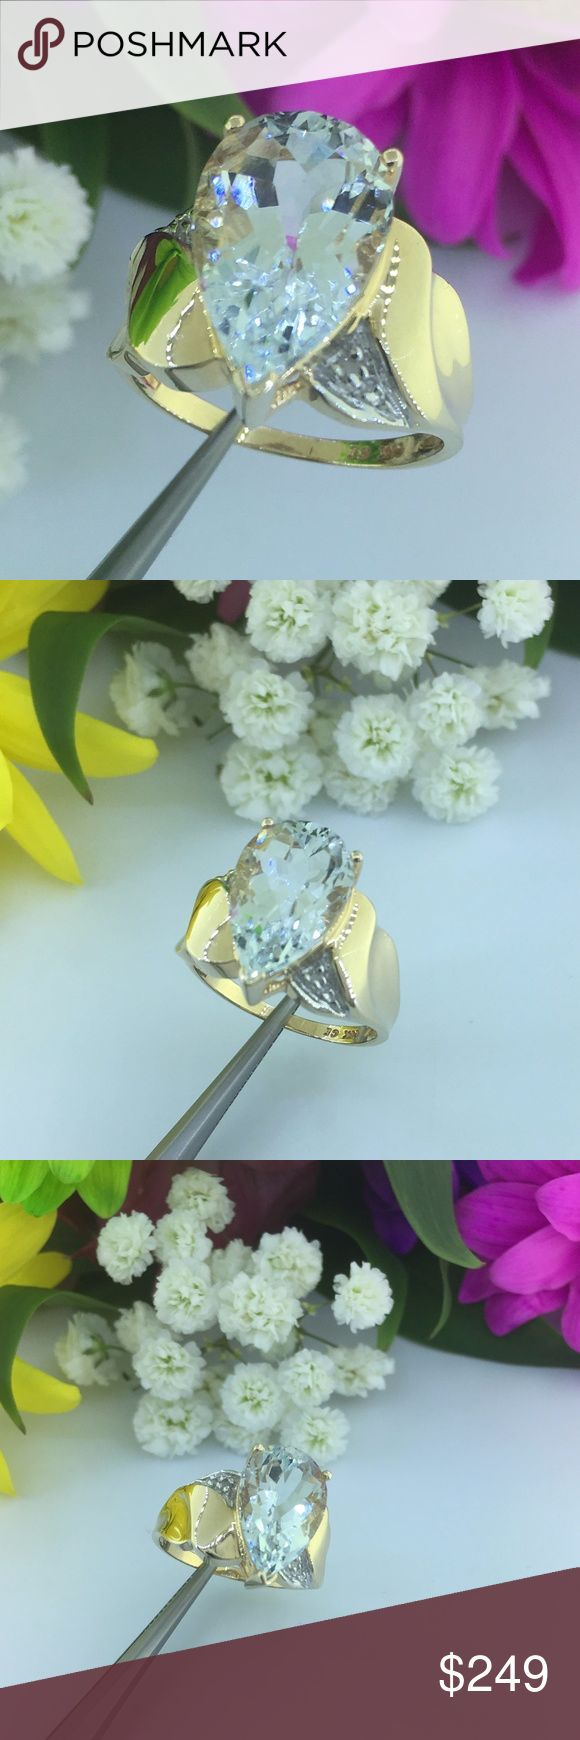 Pear Shape Large Aquamarine 14K Gold Ladies Ring Ladies 14K Yellow Gold With Large 3CT Pear Shape Aquamarine Stone Accented With Diamonds  Gemstones: Aquamarine  Mounting metal: 14K yellow gold  Ring Size: Size: 7  Center Stones: 3 CT  Total weight of piece:5.1g   Retail Price: $699 Jewelry Rings